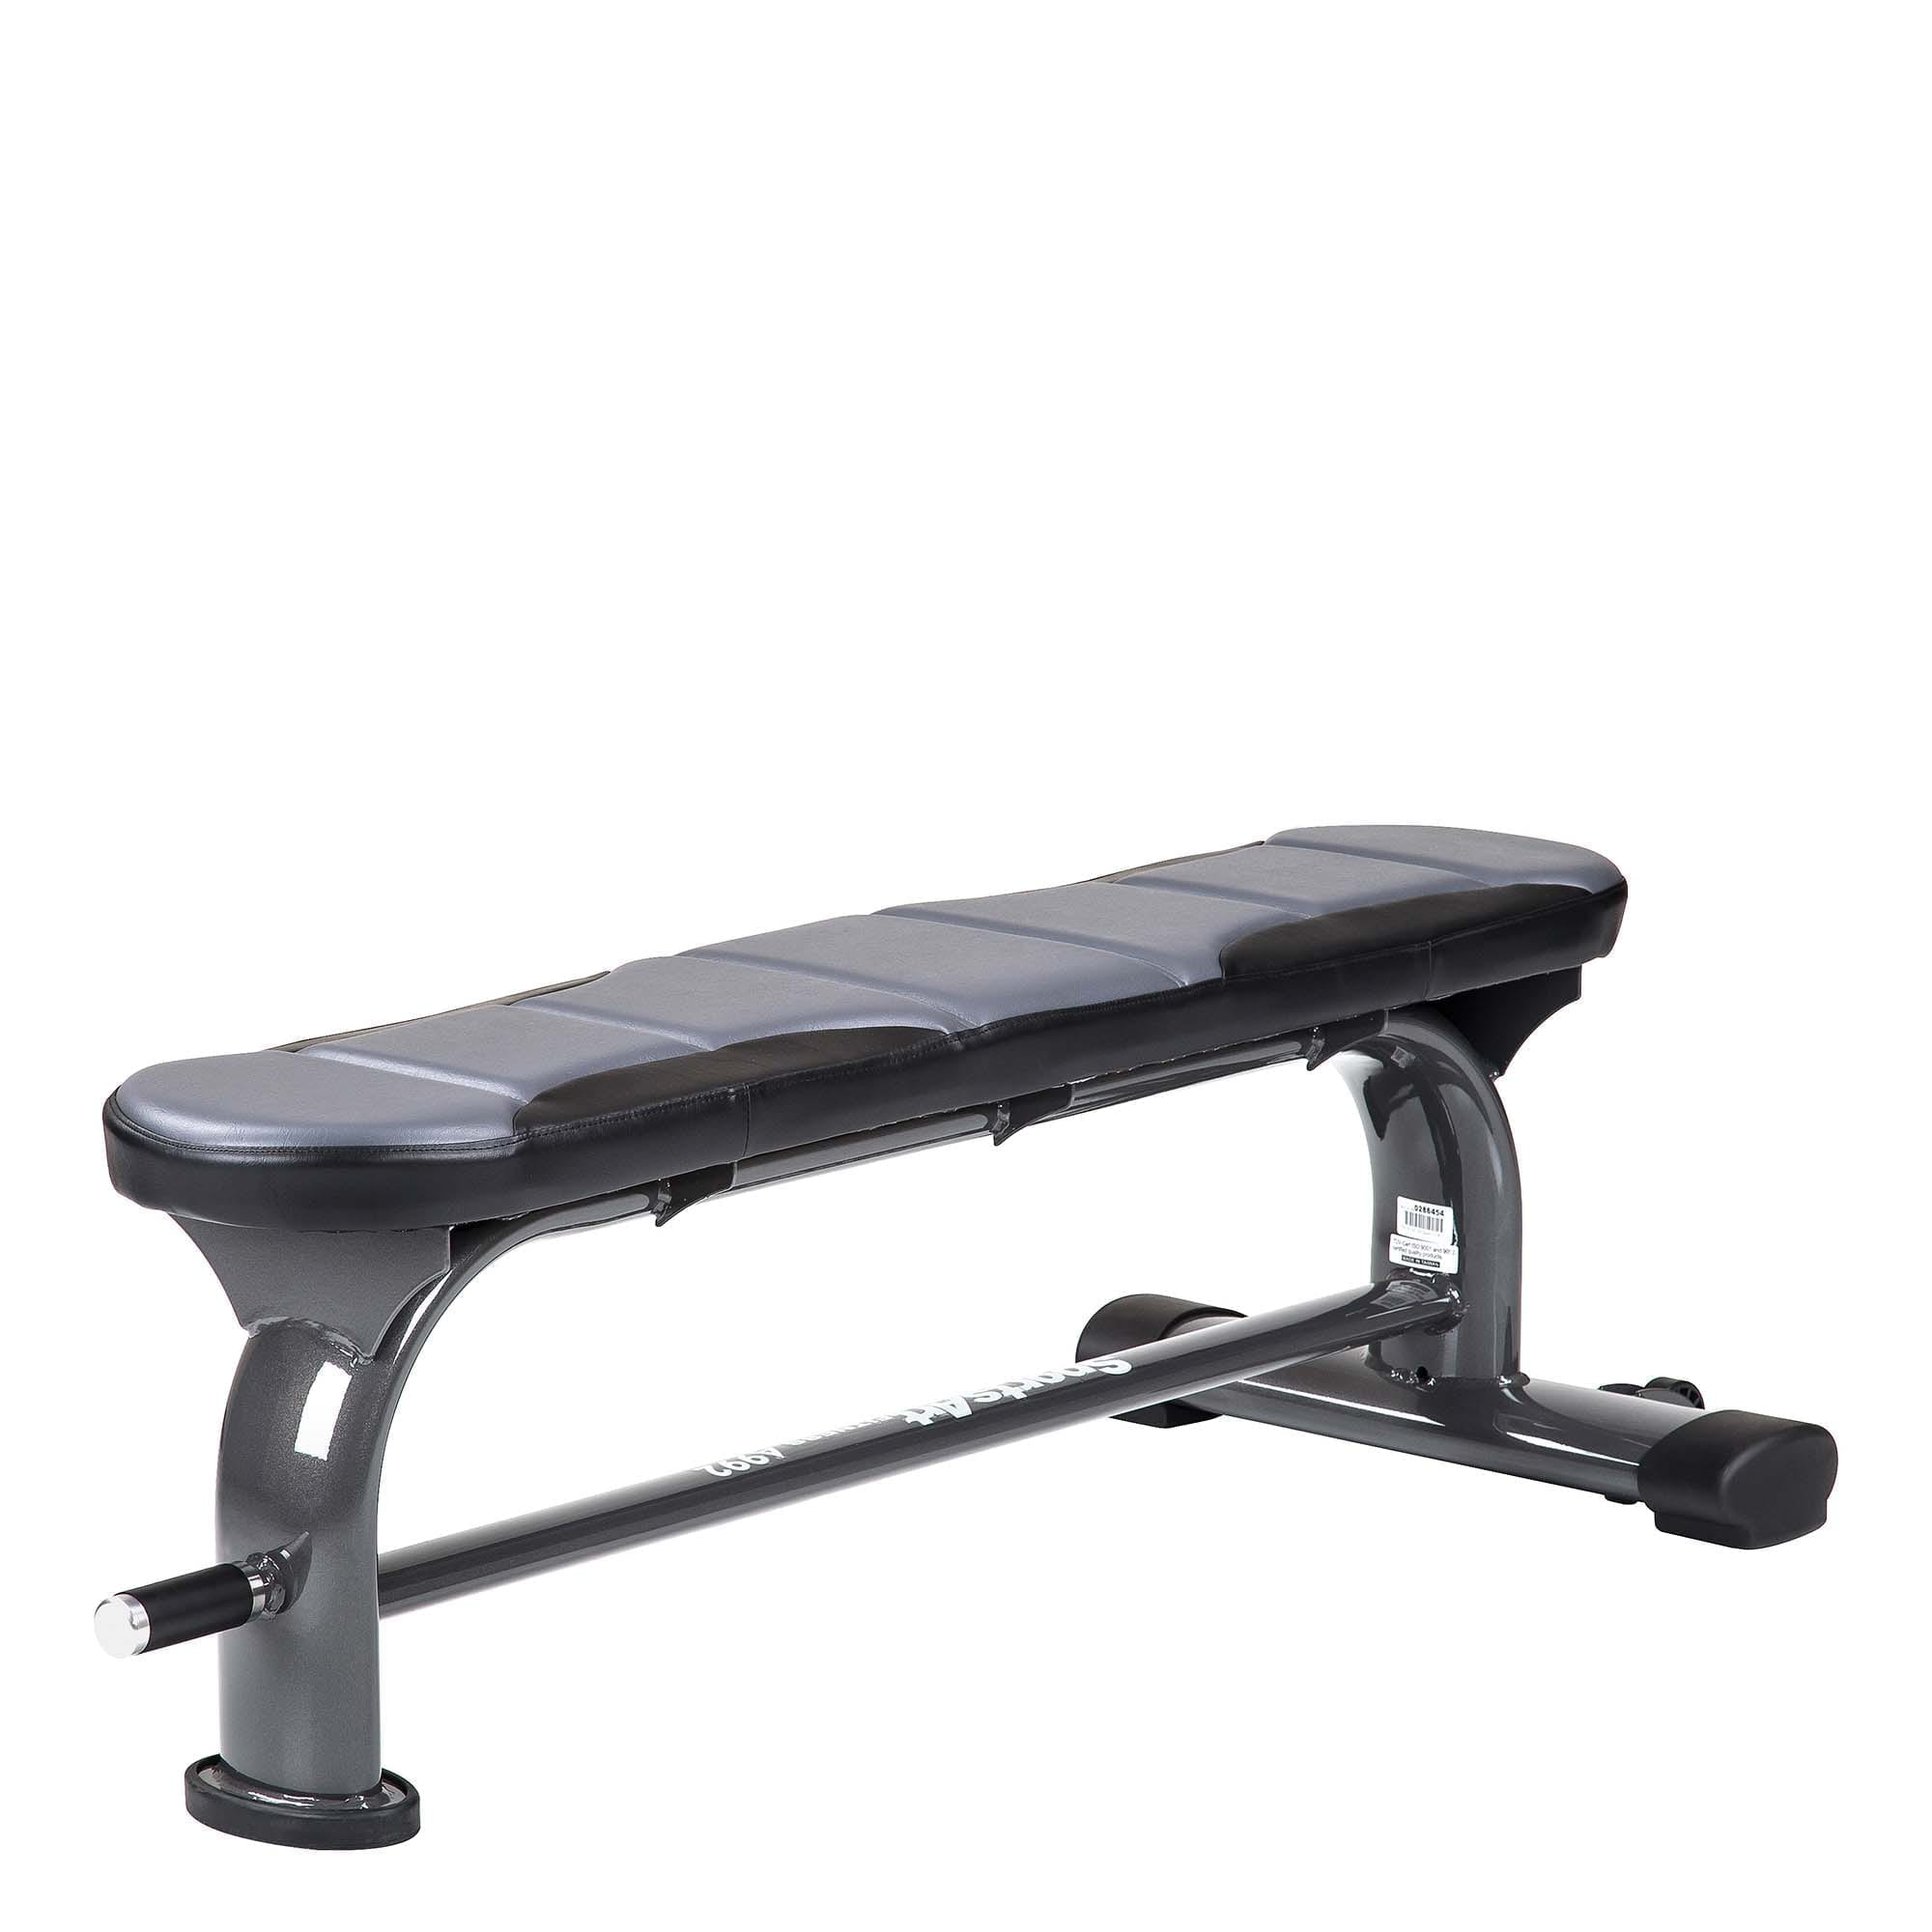 FLAT UTILITY WEIGHT BENCH - SPORTSART (A992)